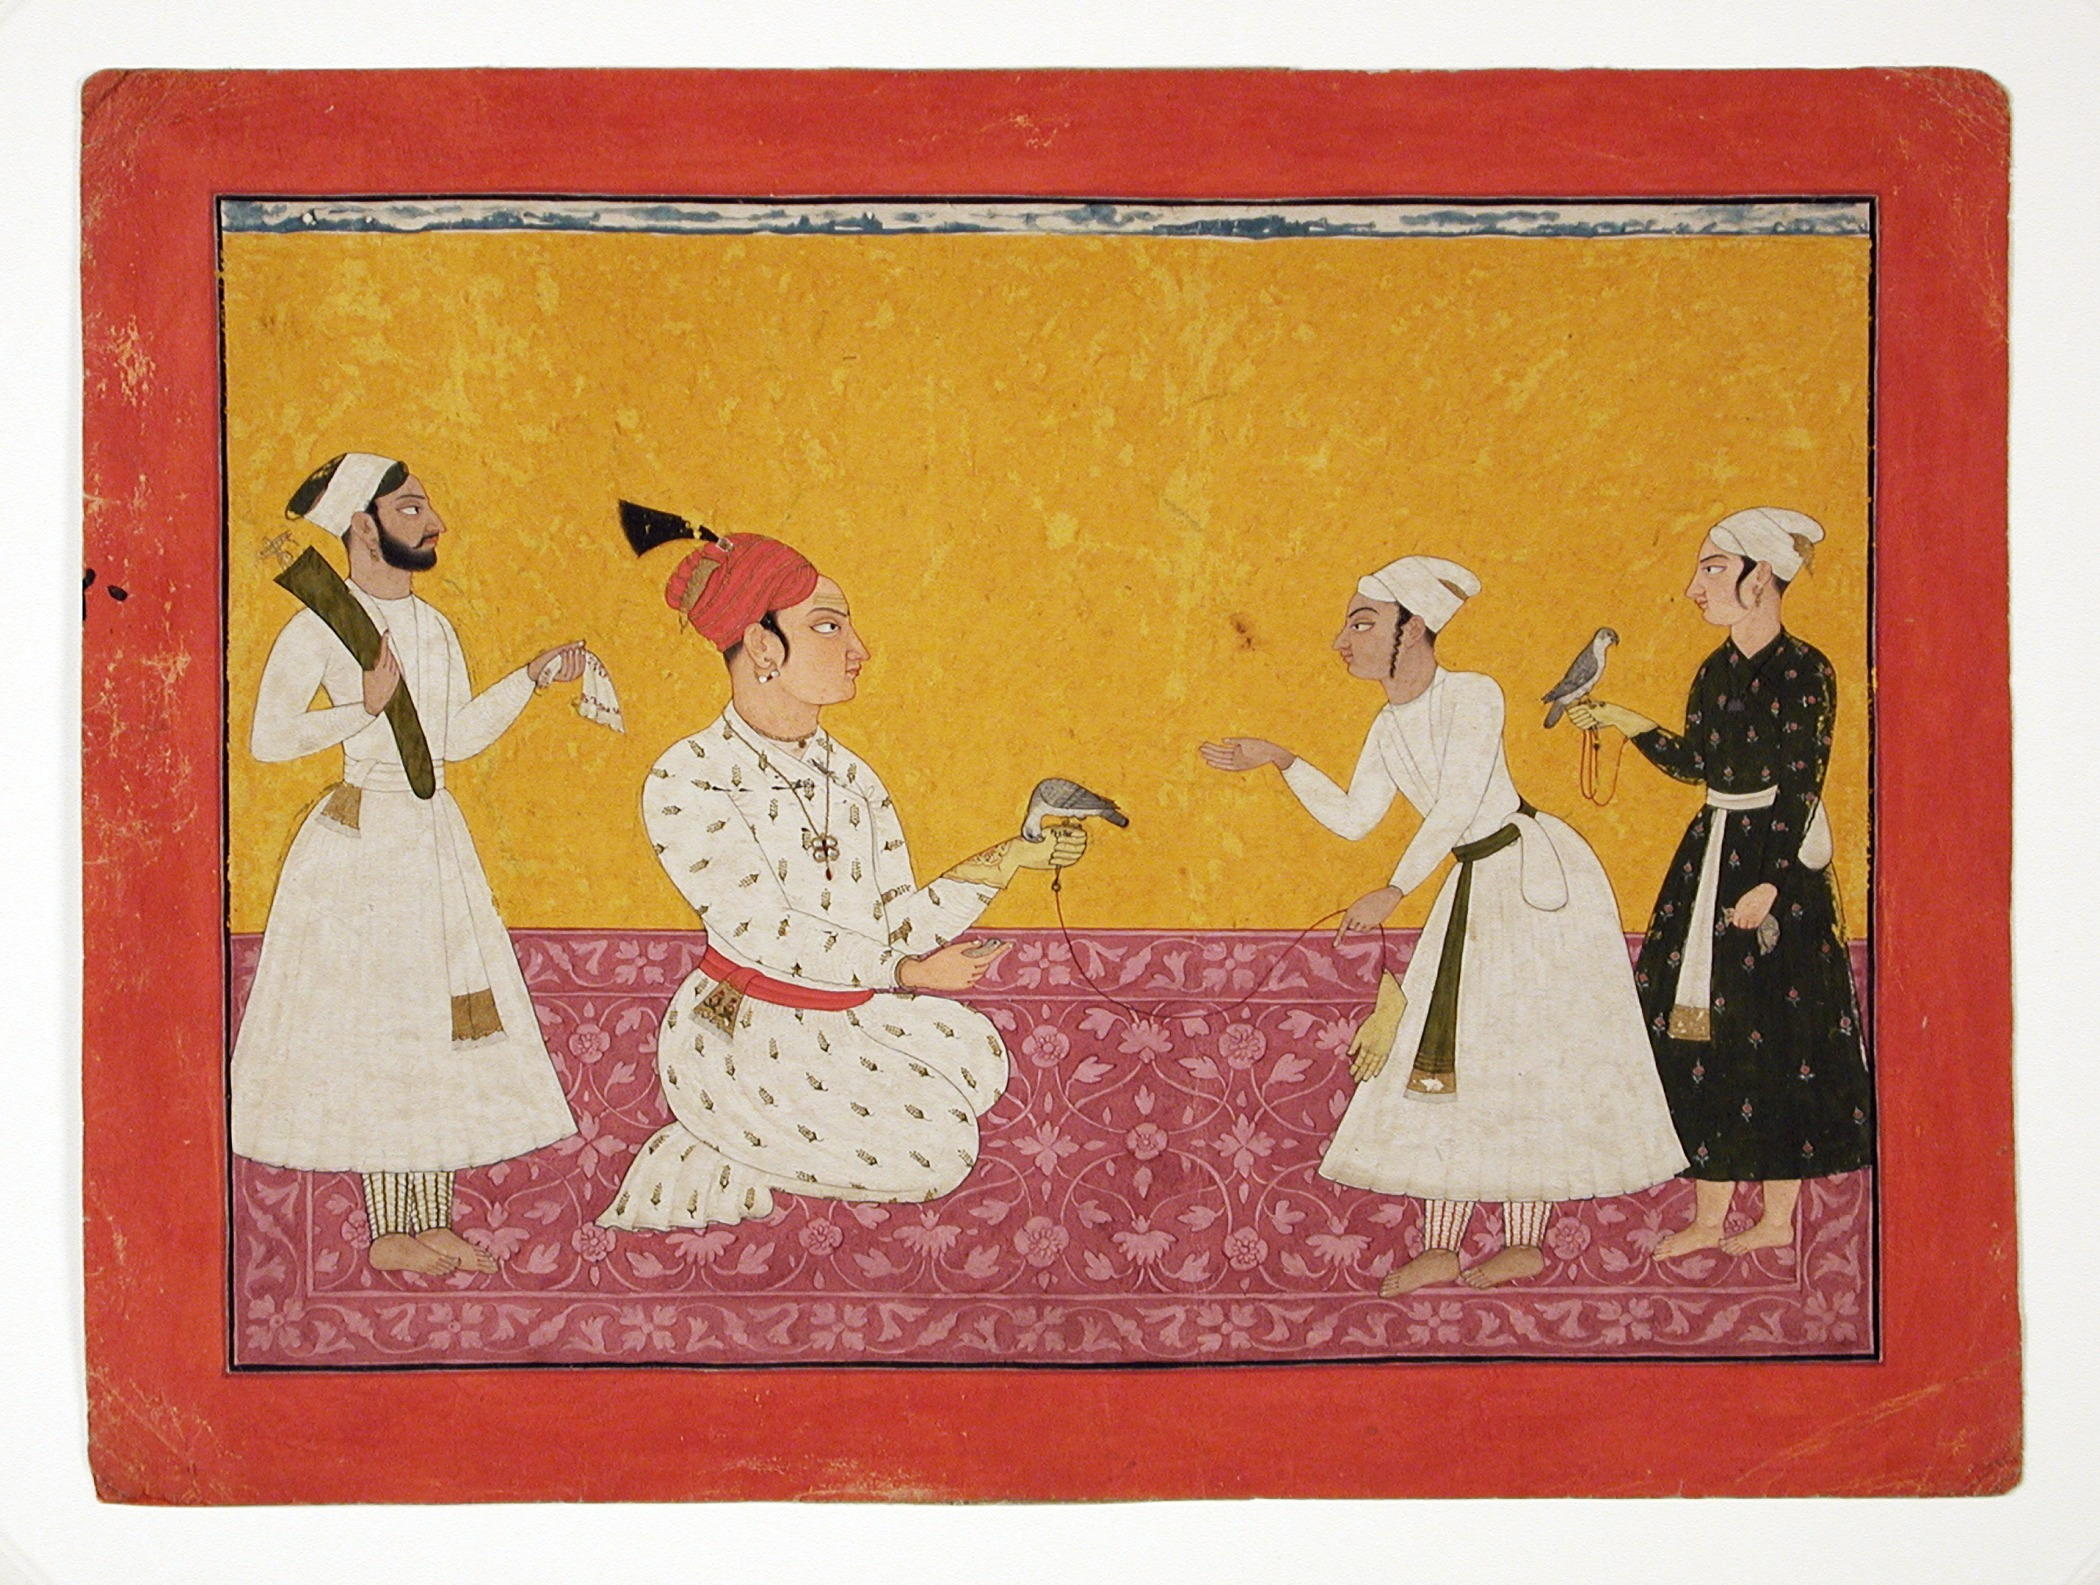 File:Raja Medini Pal (Reigned 1722-1736) of Basohli Being Presented with